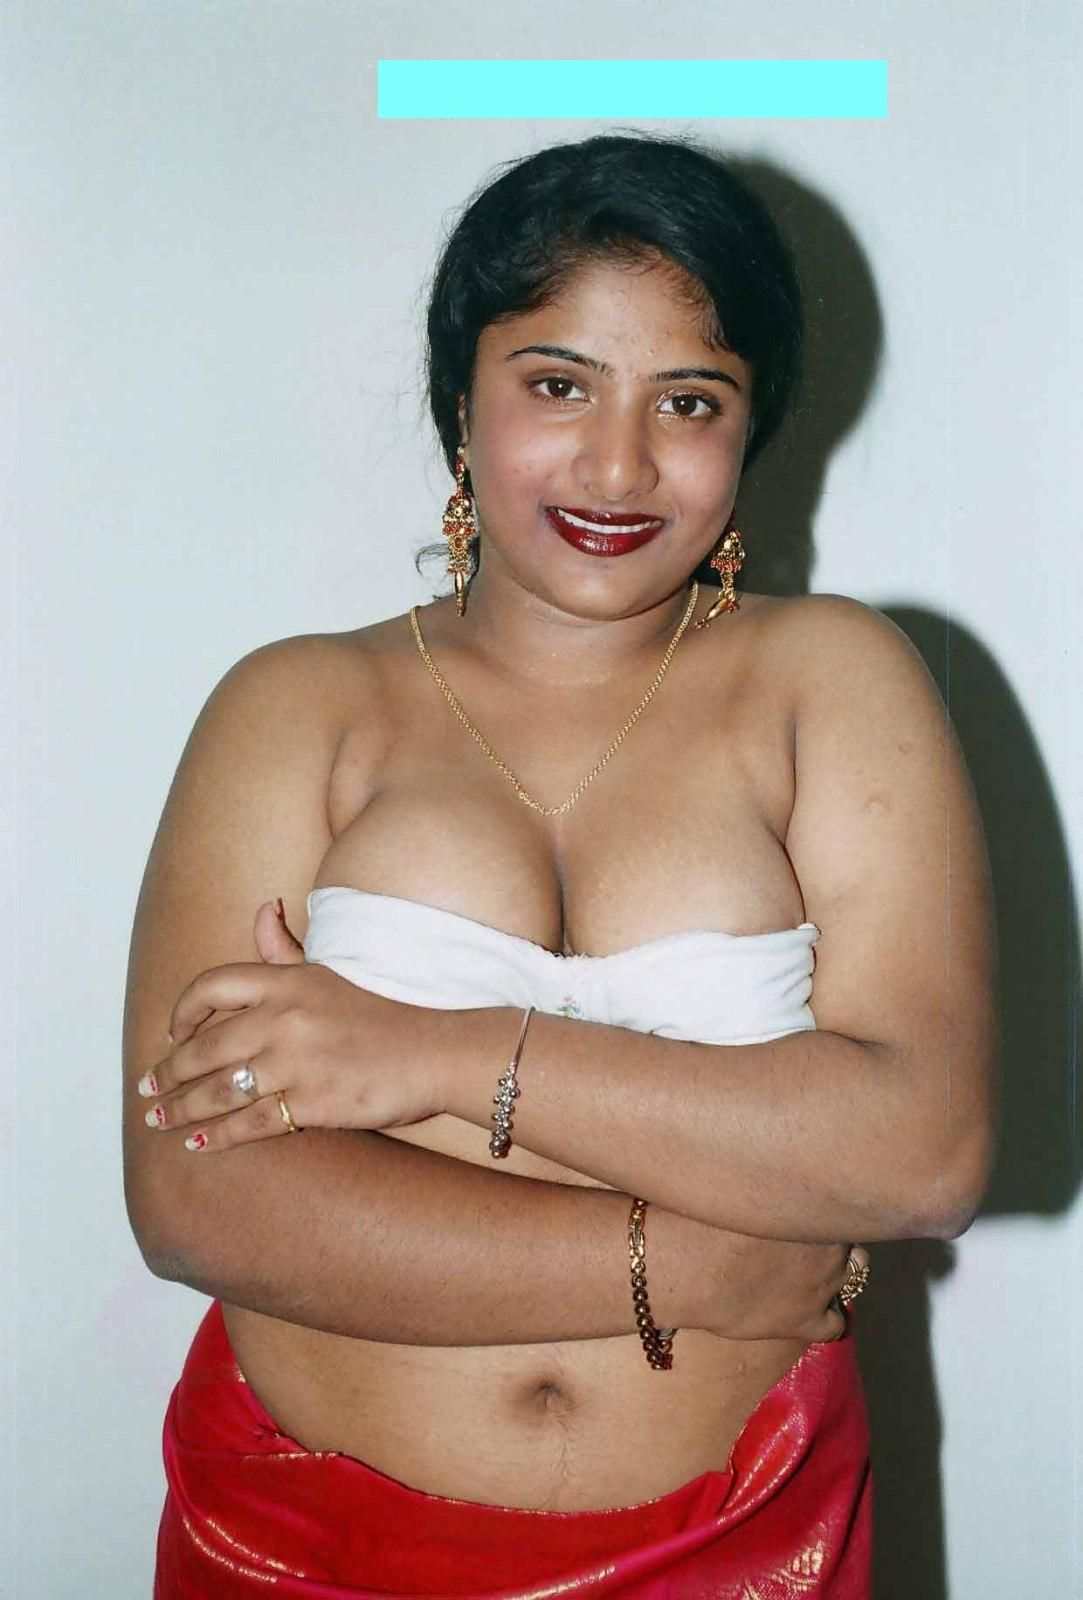 Hot Indian Women South Actress Hot Pics South Indian Aunties Collection